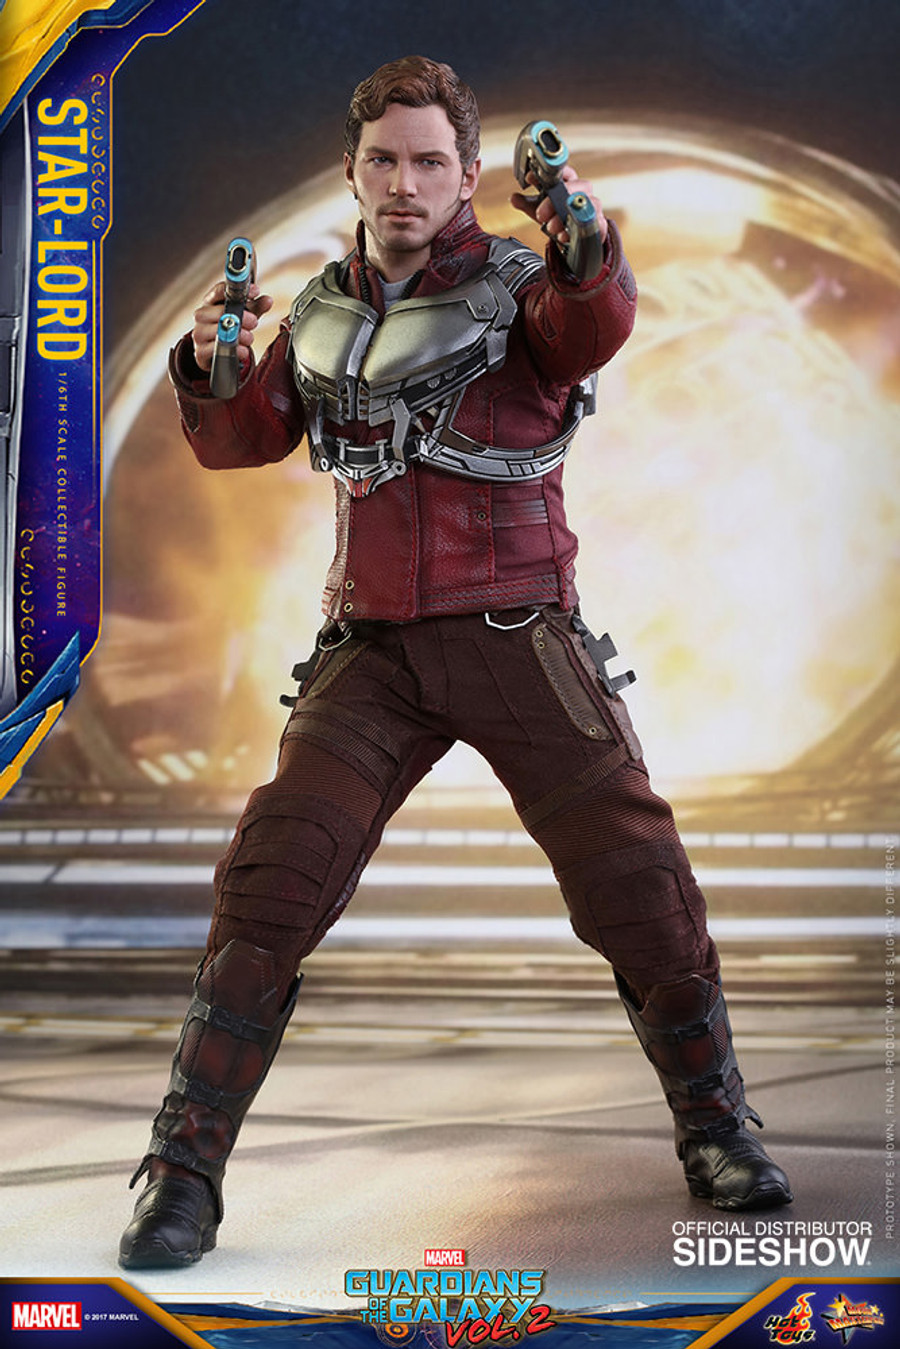 Hot Toys - Guardians of the Galaxy Vol. 2 - Star-Lord